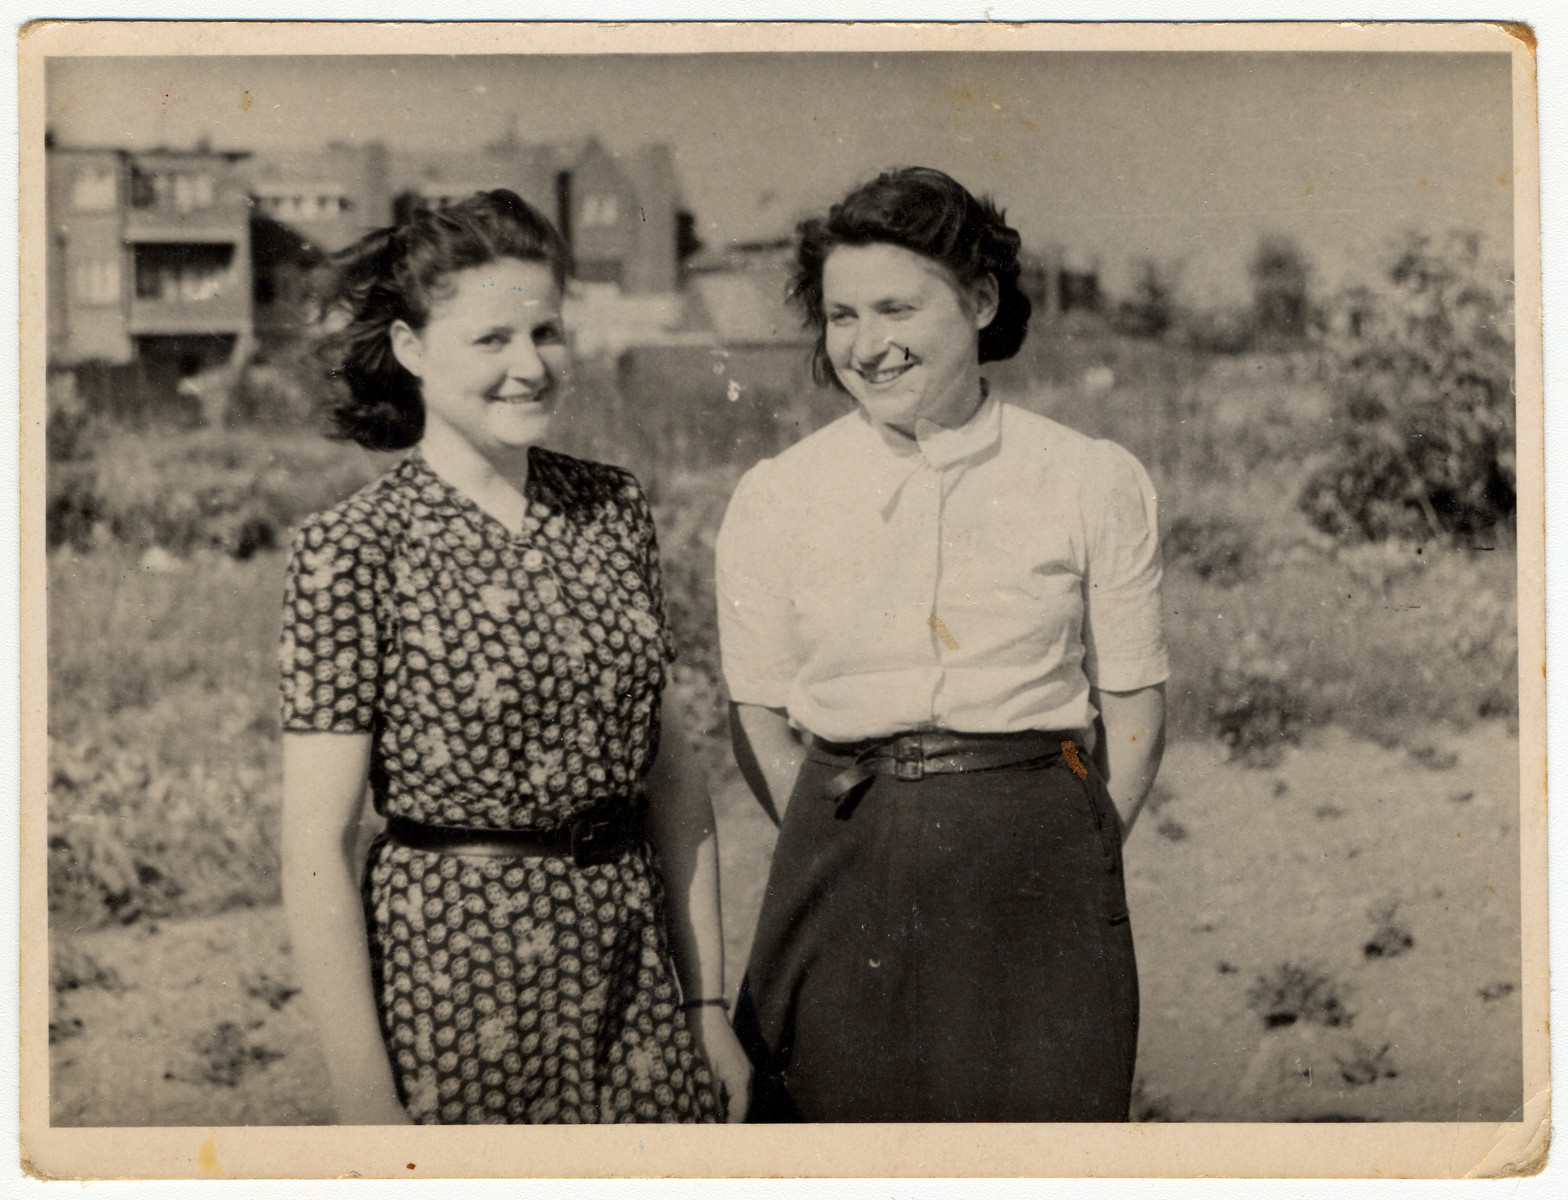 Ina and Josette Soep stand outside in eastern Holland shortly after their return to The Netherlands following liberation.